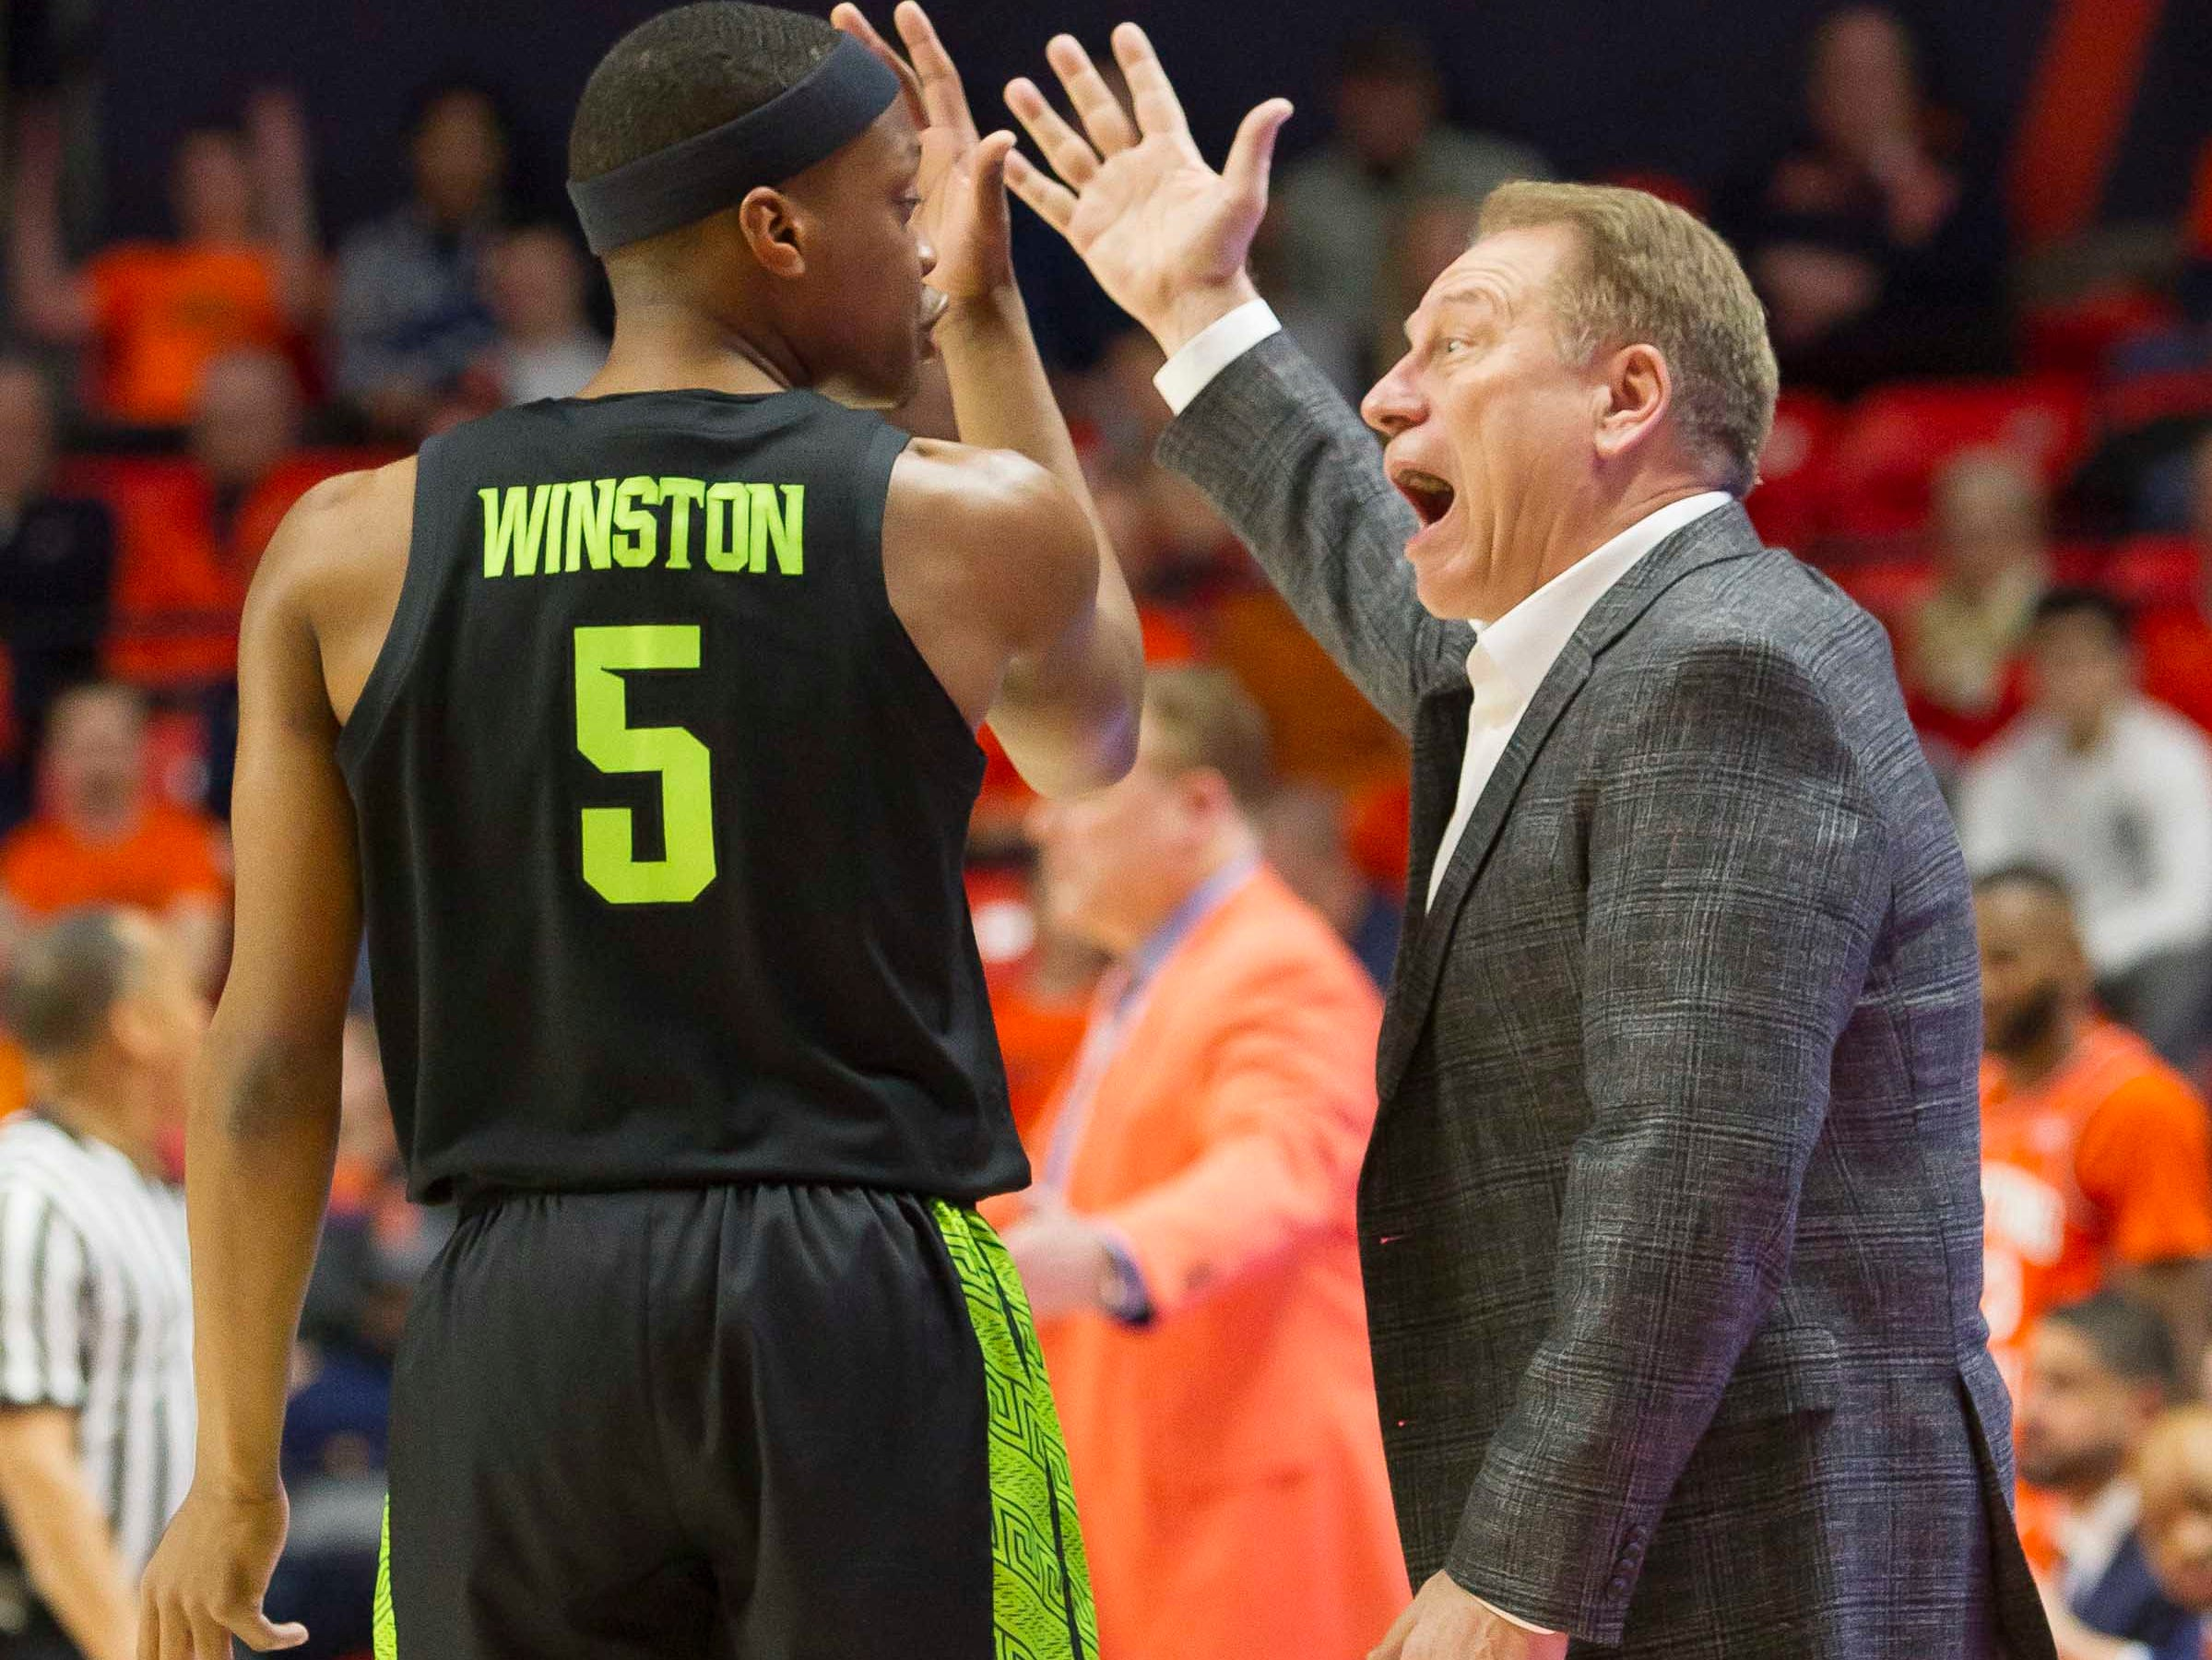 Feb 5, 2019; Champaign, IL, USA; Michigan State Spartans head coach Tom Izzo has a discussion with guard Cassius Winston (5) during the first half against the Illinois Fighting Illini at State Farm Center. Mandatory Credit: Mike Granse-USA TODAY Sports